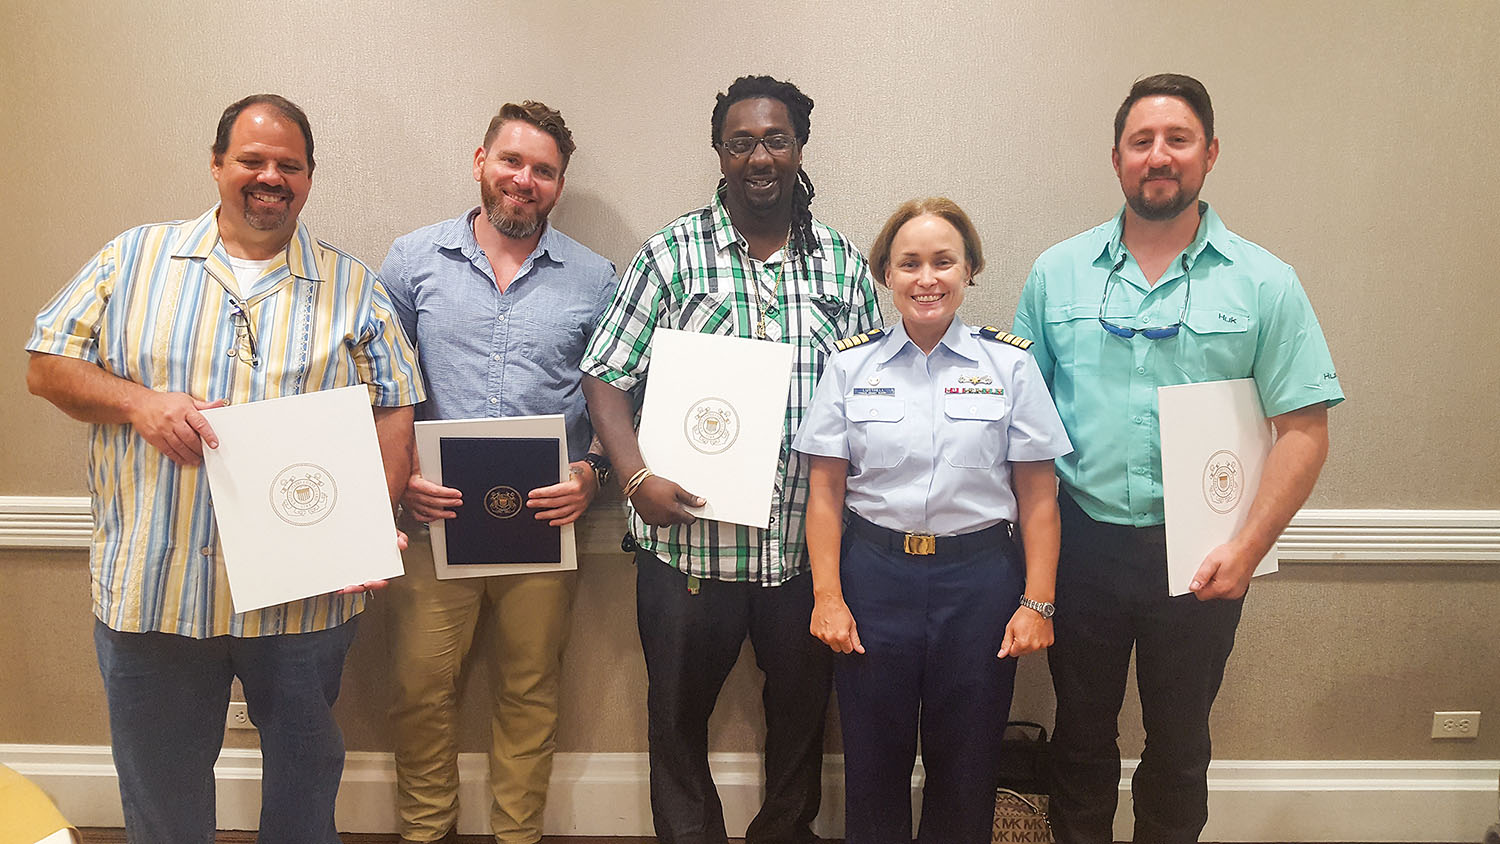 Coast Guard Capt. Kristi Luttrell presented a Certificate of Merit to the crew of the Z-drive ship assist  tug Archie T. Higgins for assisting the Creole Queen when it lost power with 273 passengers on board. From left: mate Eric Burlette, Capt. Josh Sheffield, deckhand Jacob Toliver, Luttrell and engineer Ryan Harrison. (Photo by Capt. Richard Eberhardt)